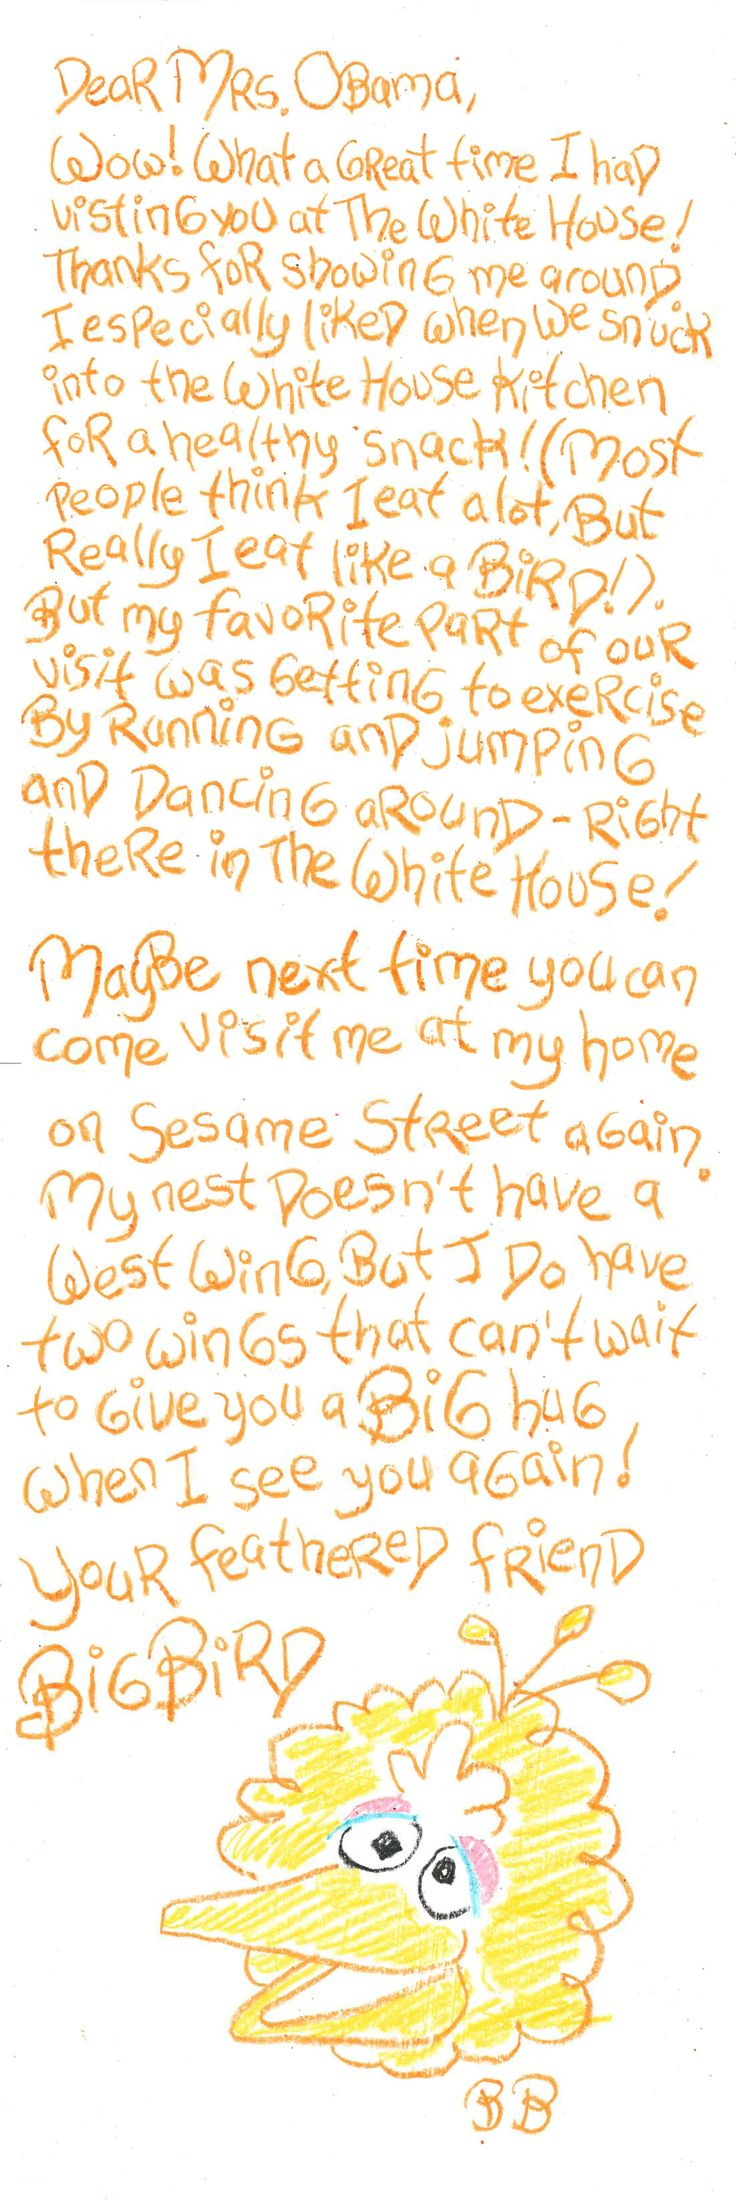 Big Bird wrote a thank you note to Mrs. Obama for inviting him to the White House! (If you can't read it, click through!)